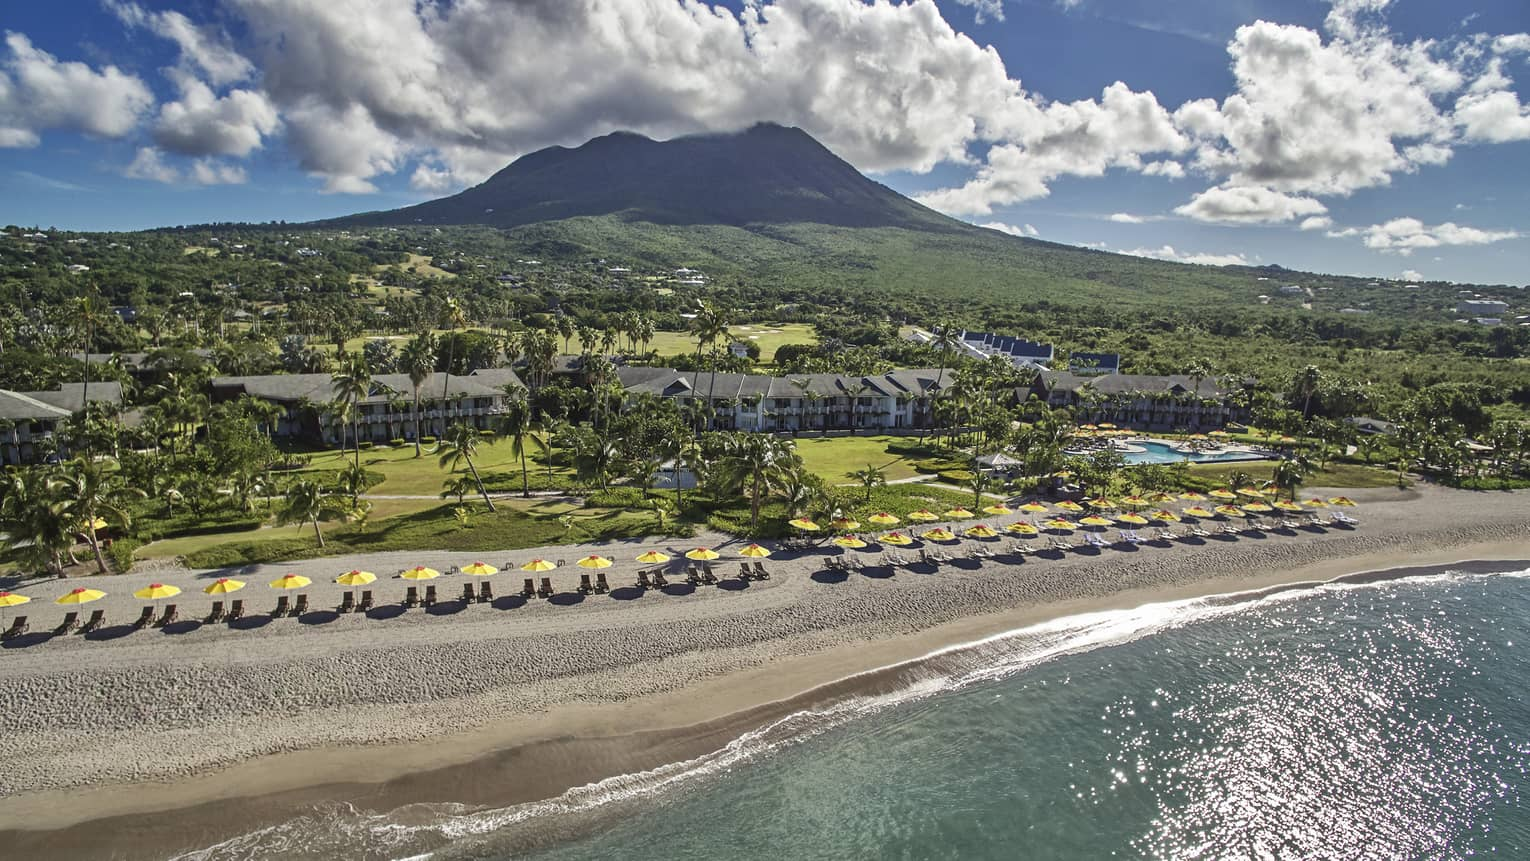 View over Four Seasons Resort Nevis, yellow umbrellas line beach, mountain, clouds